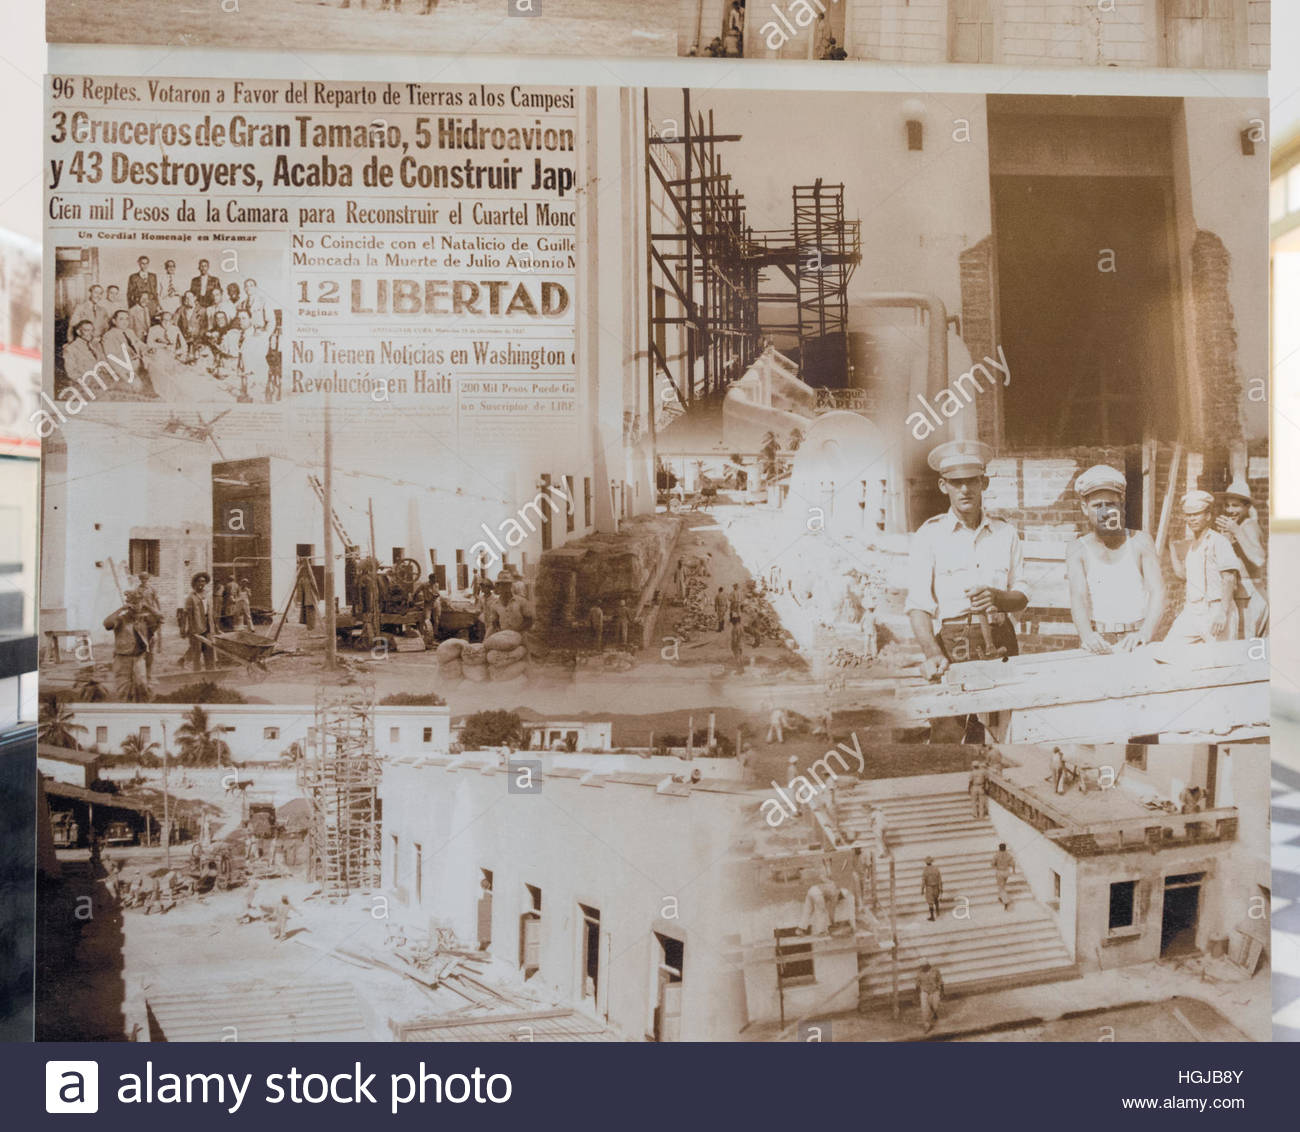 Cuban history: Old newspaper showing the reconstruction history of Moncada Military Barracks. - Stock Image